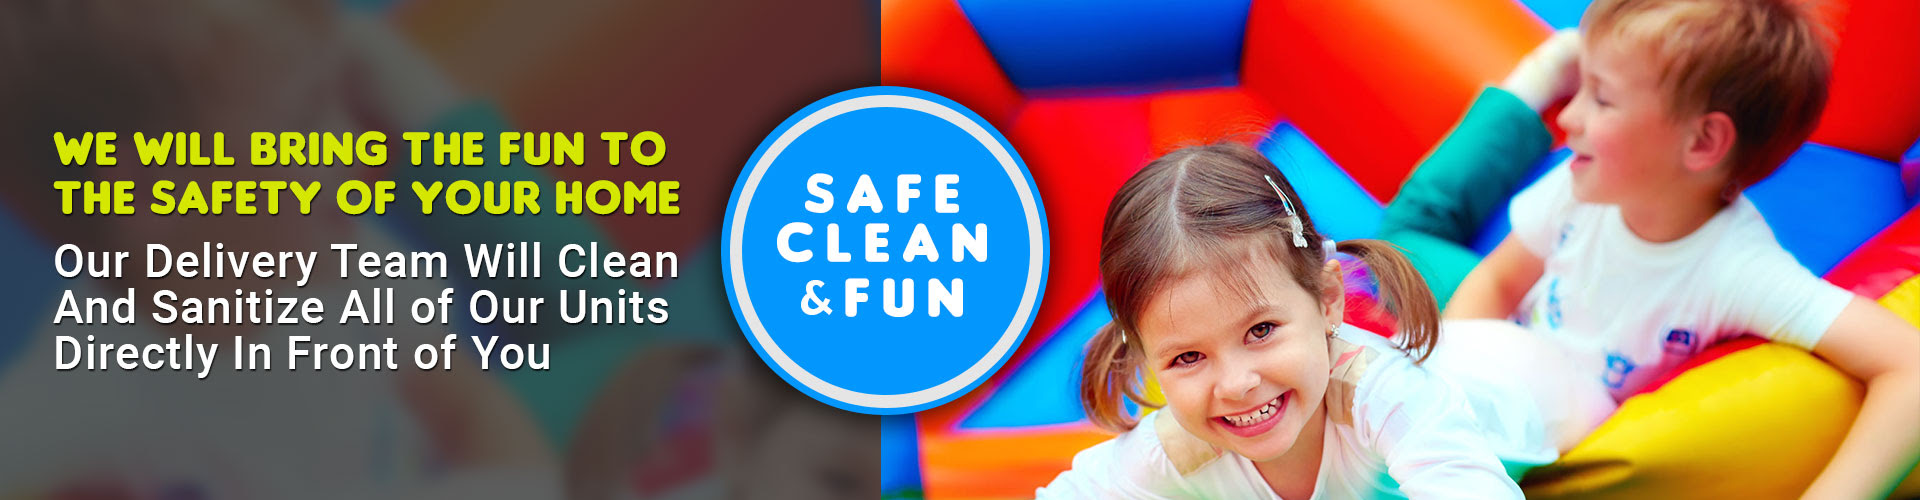 Clean and safe bounce house rentals.